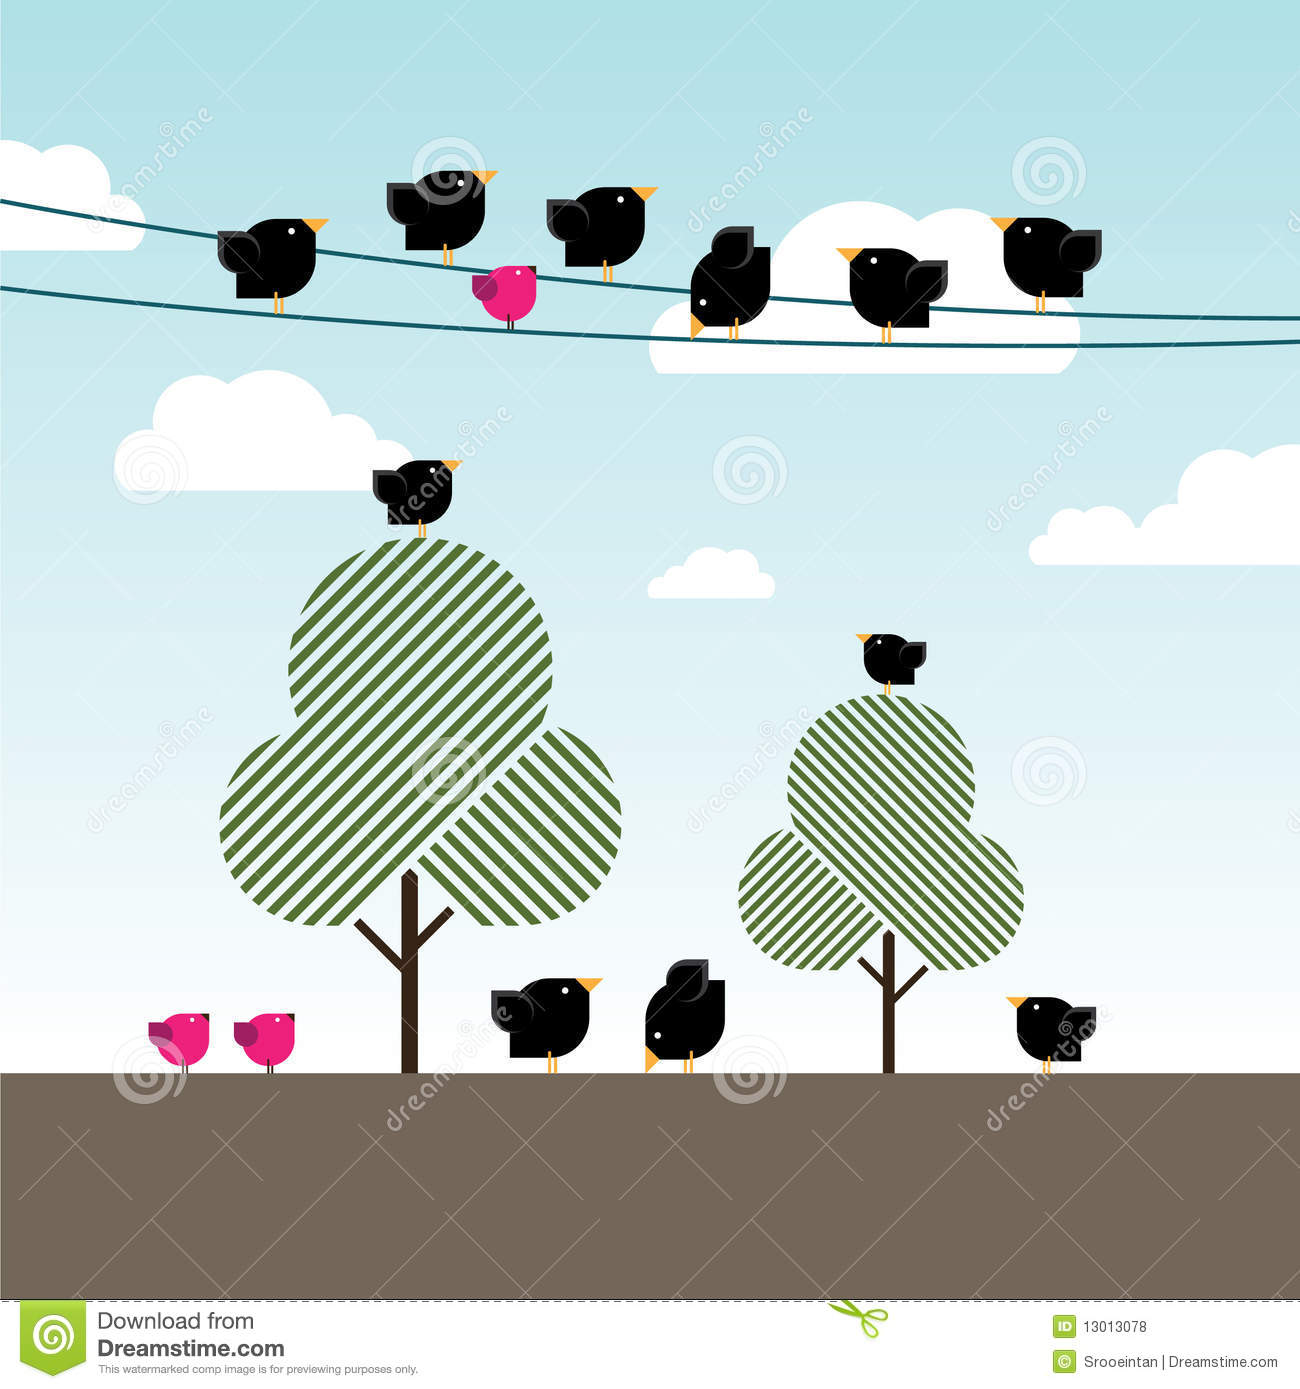 Black Crows And Magenta Birds On Power Lines Royalty Free Stock.